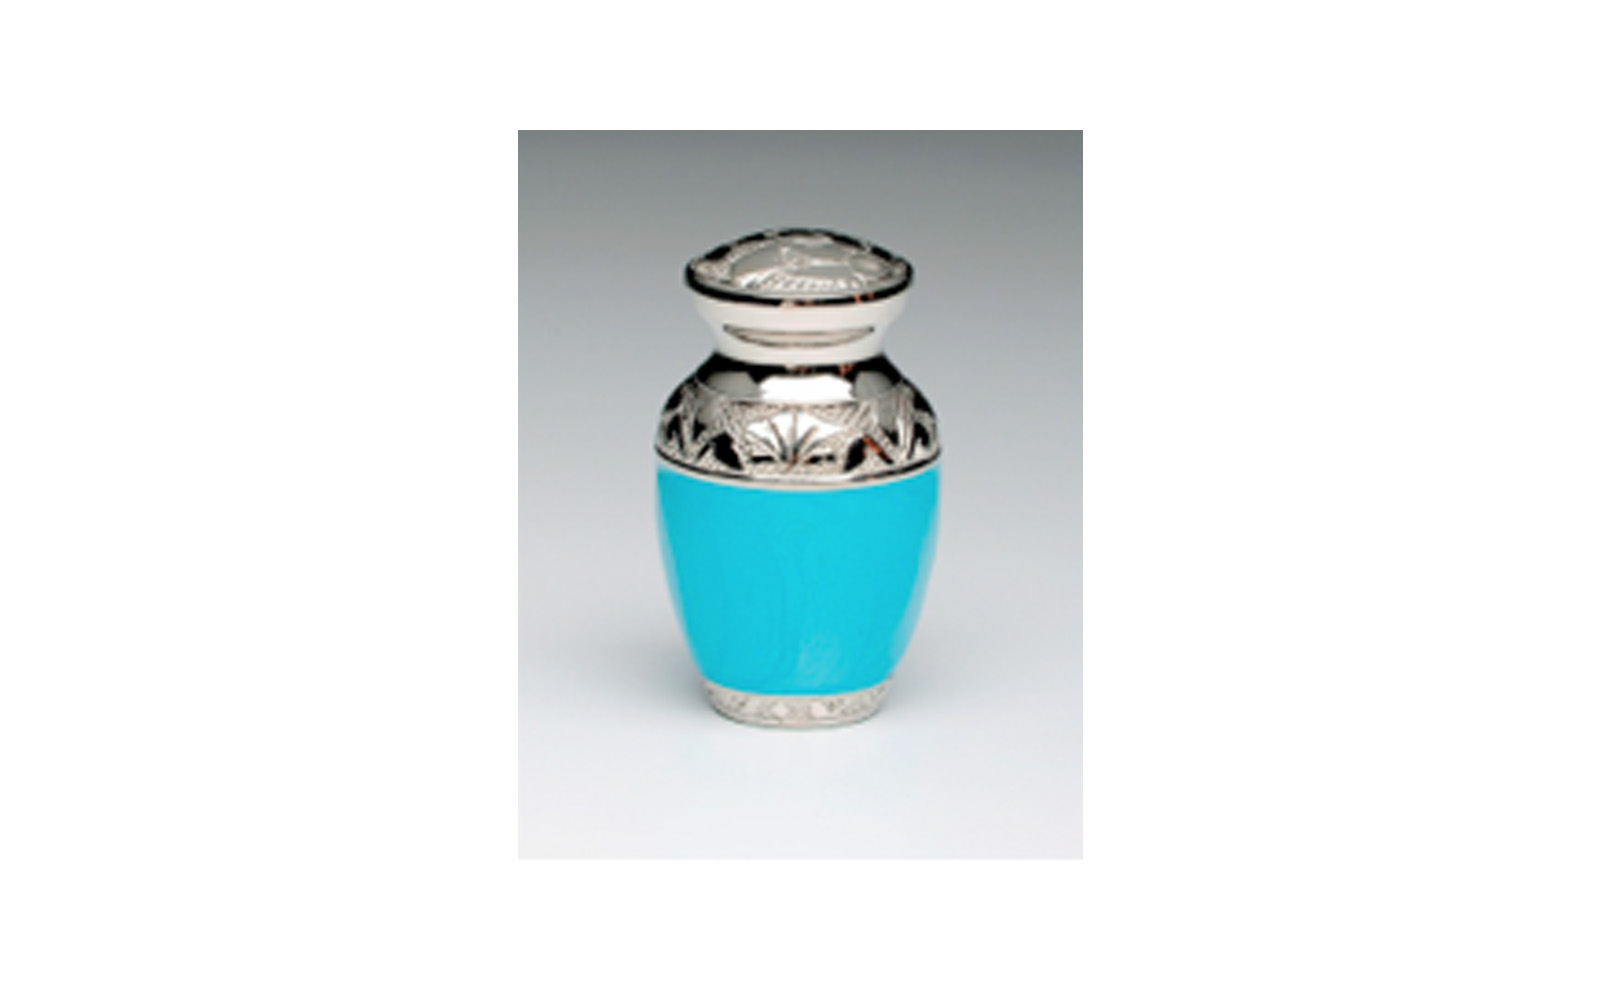 "Baby Blue & Baby Pink Keepsake   This keepsake comes in either   Baby Blue (shown) or Baby Pink Enamel over Nickel Plated Brass. It has a Threaded Lid, Felt-lined base, and comes with a Velvet Box. Measures 3"" H x 2"" W, 3 Cu. Inches, up to 2 lbs.,  $45"